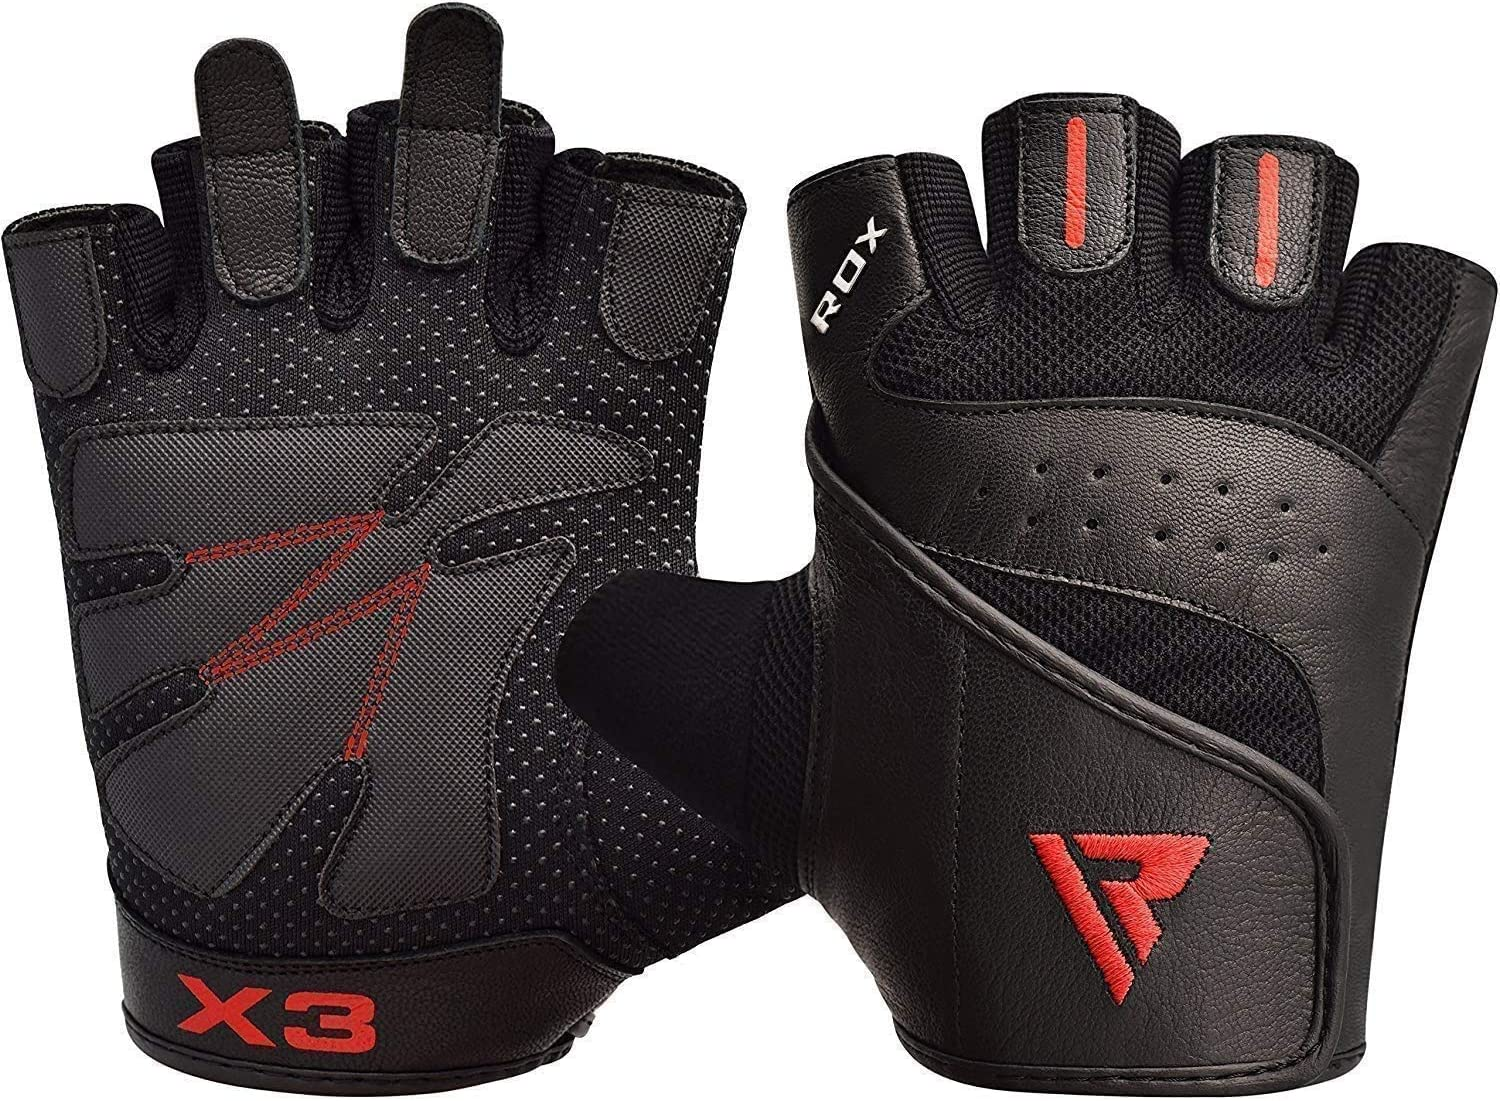 RDX Women Weight Lifting Gloves for - Breathable Free At the price shipping anywhere in the nation Gym wit Workout